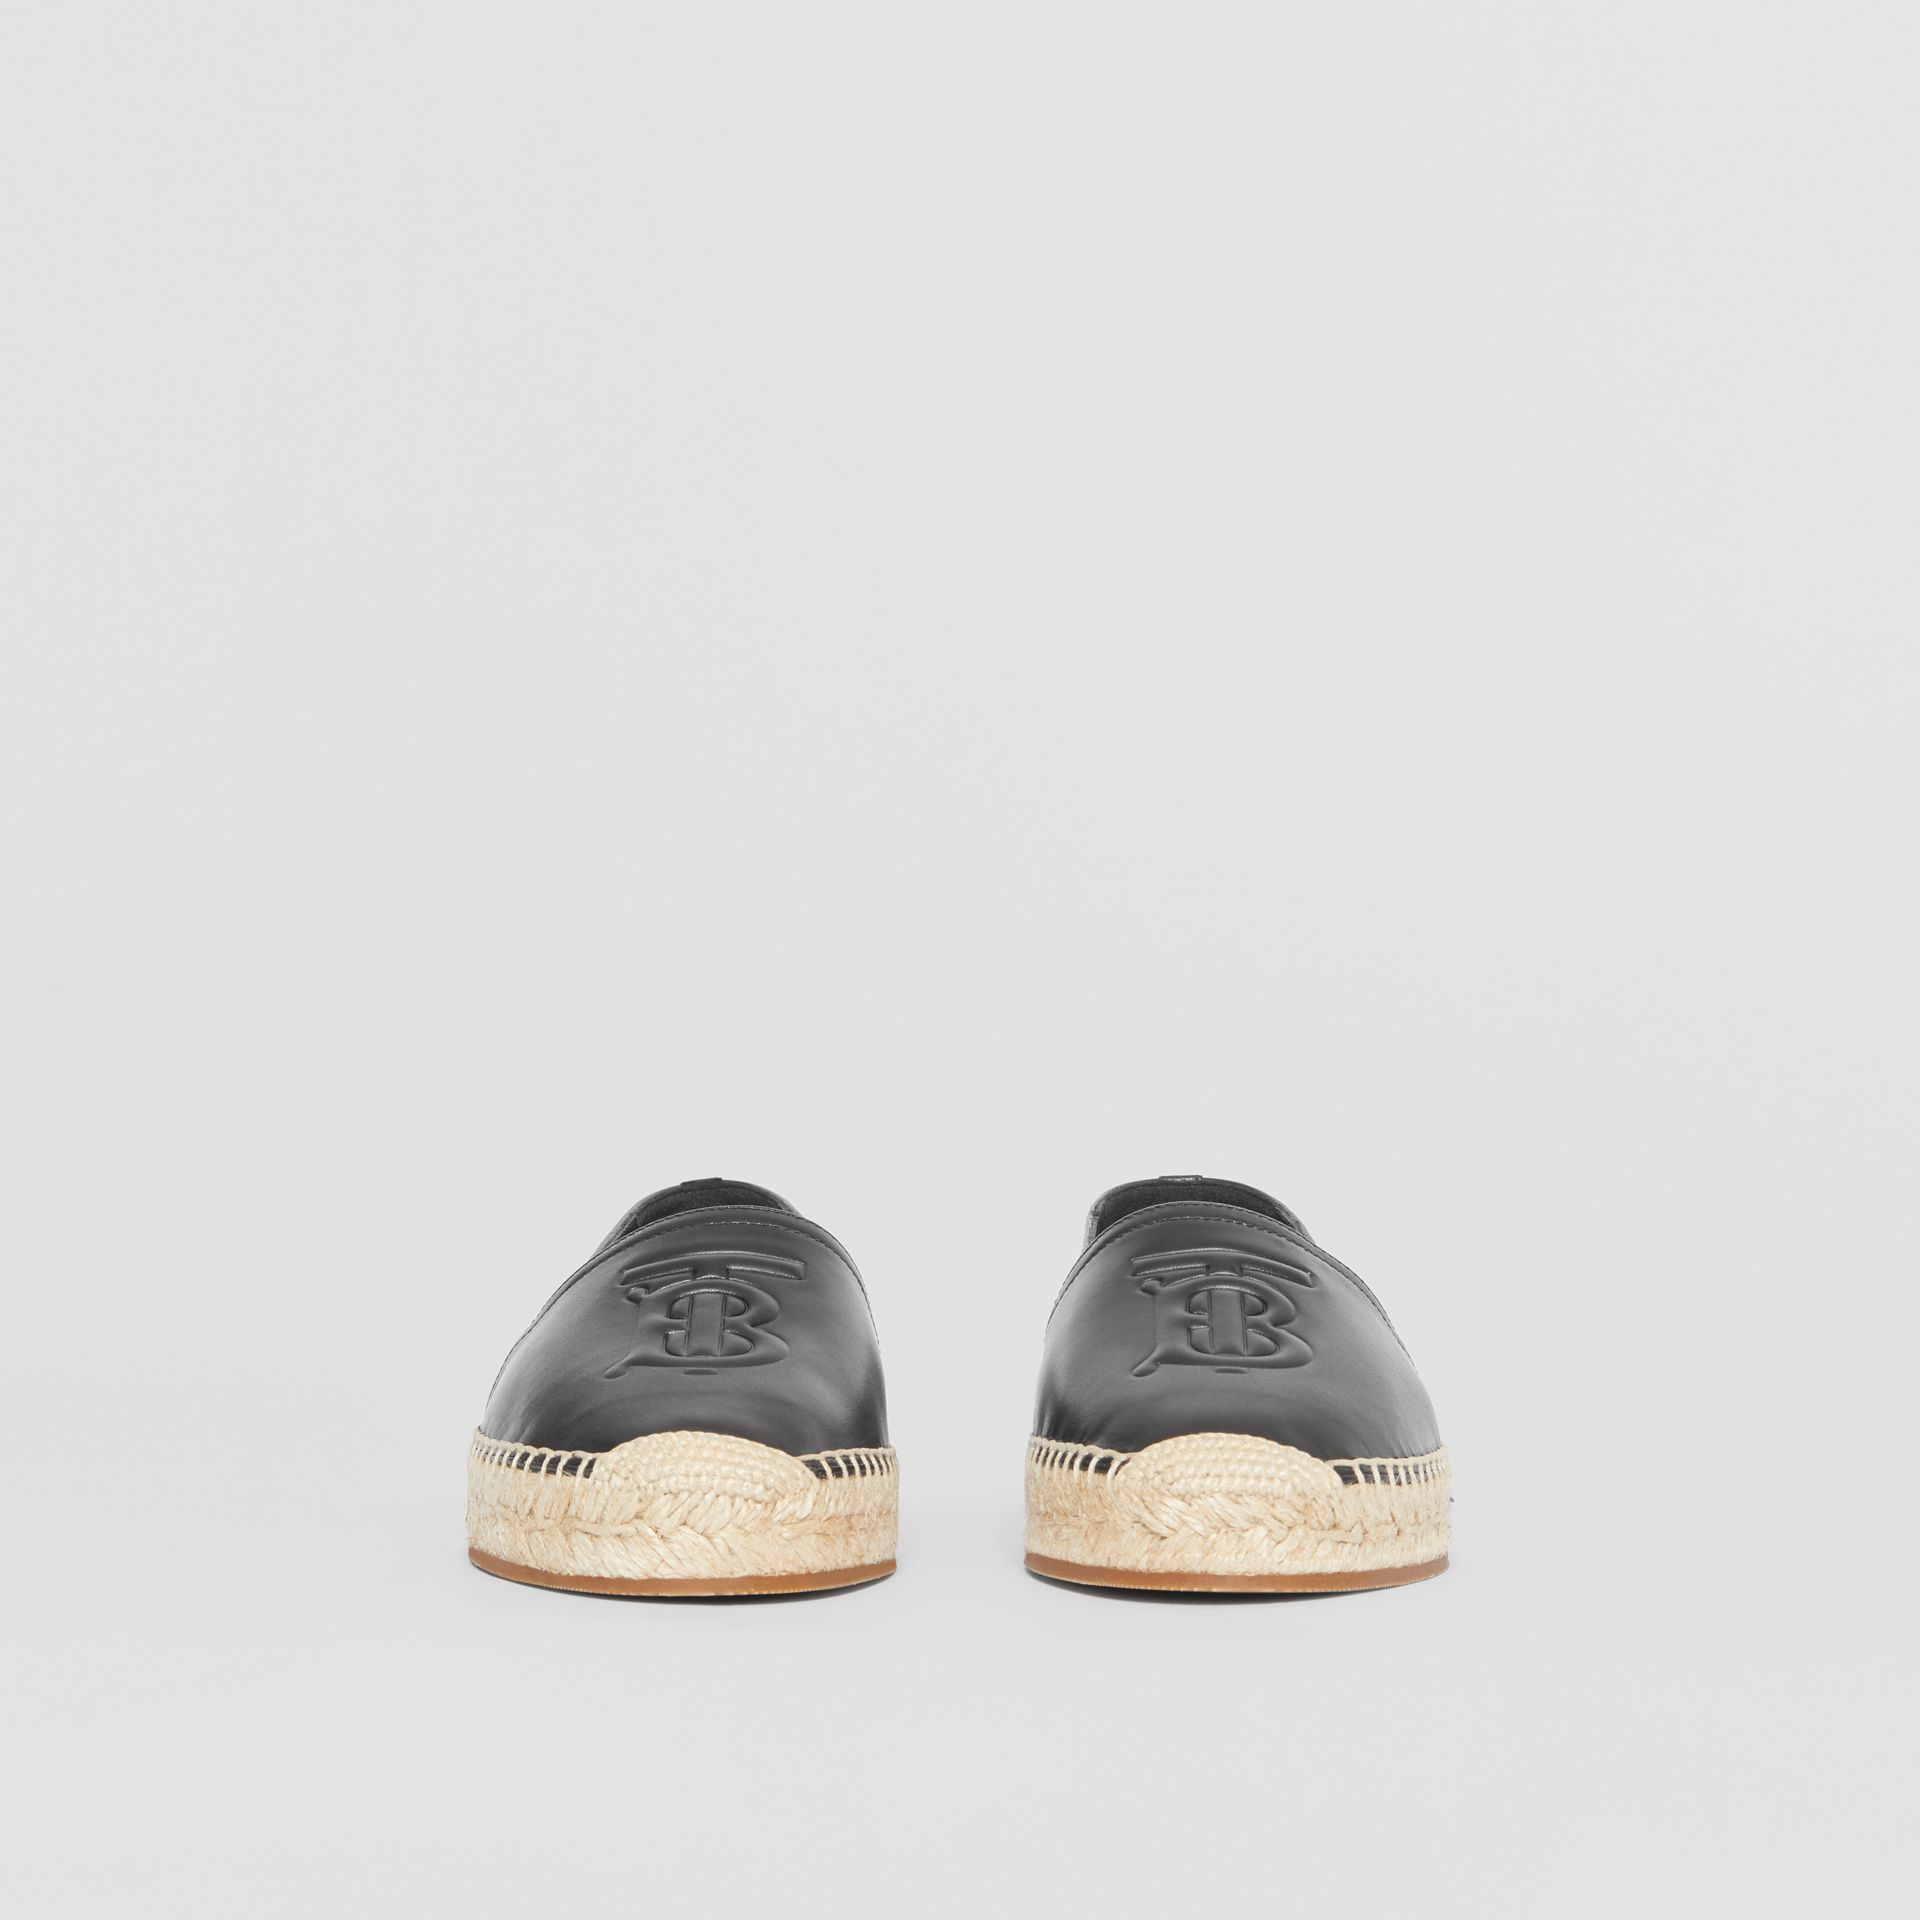 Monogram Motif Leather Espadrilles in Black - Women | Burberry United Kingdom - gallery image 3